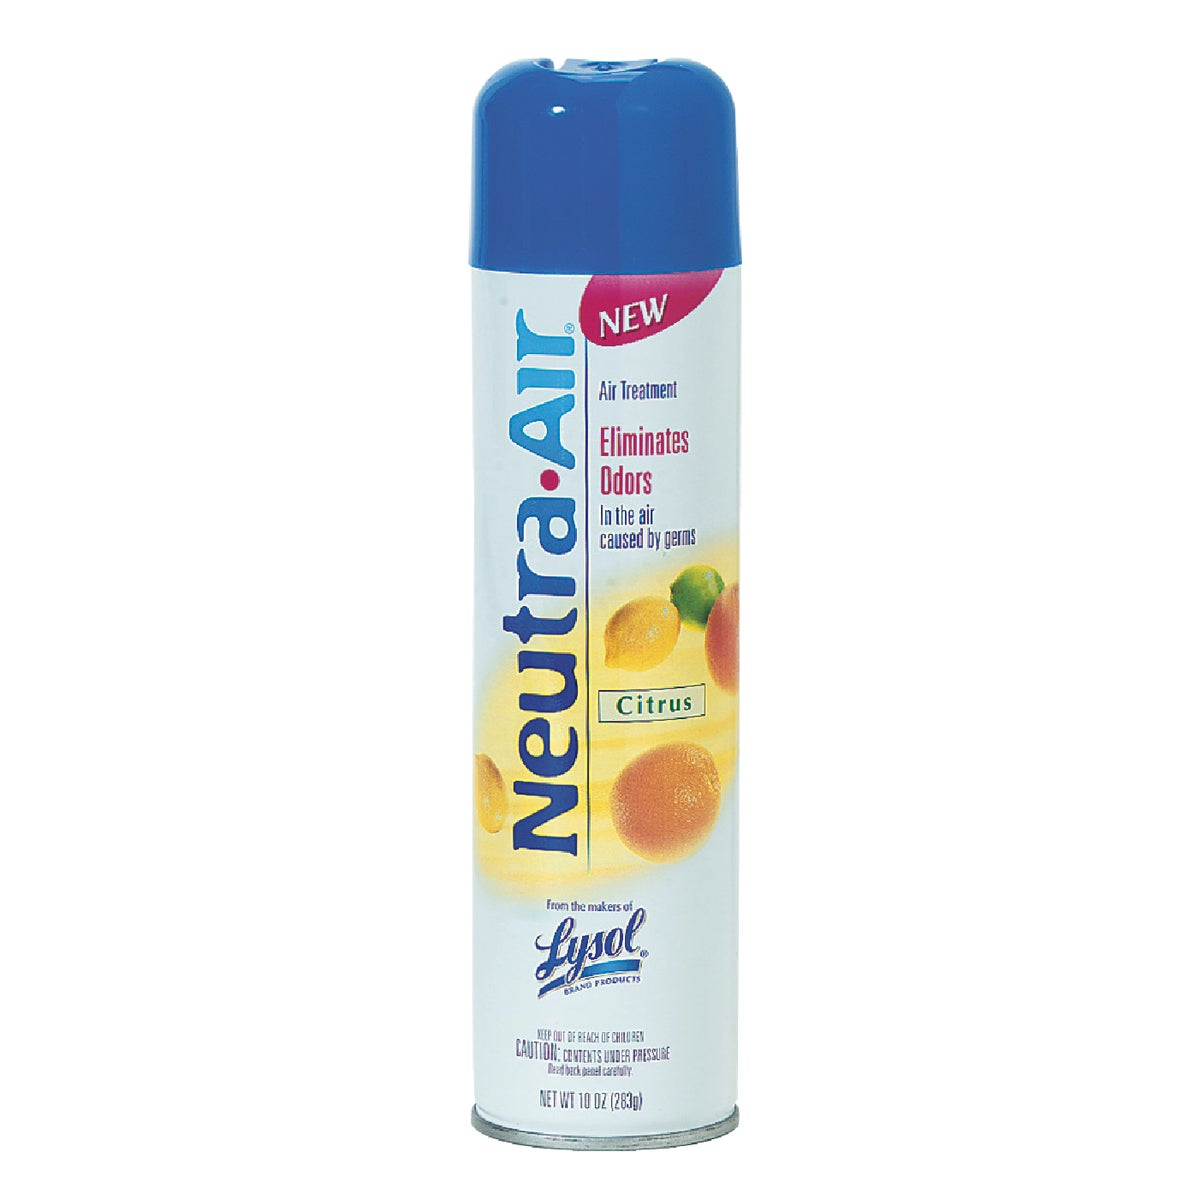 10OZ CITRS AIR FRESHENER - 1920076940 by Reckitt Benckiser